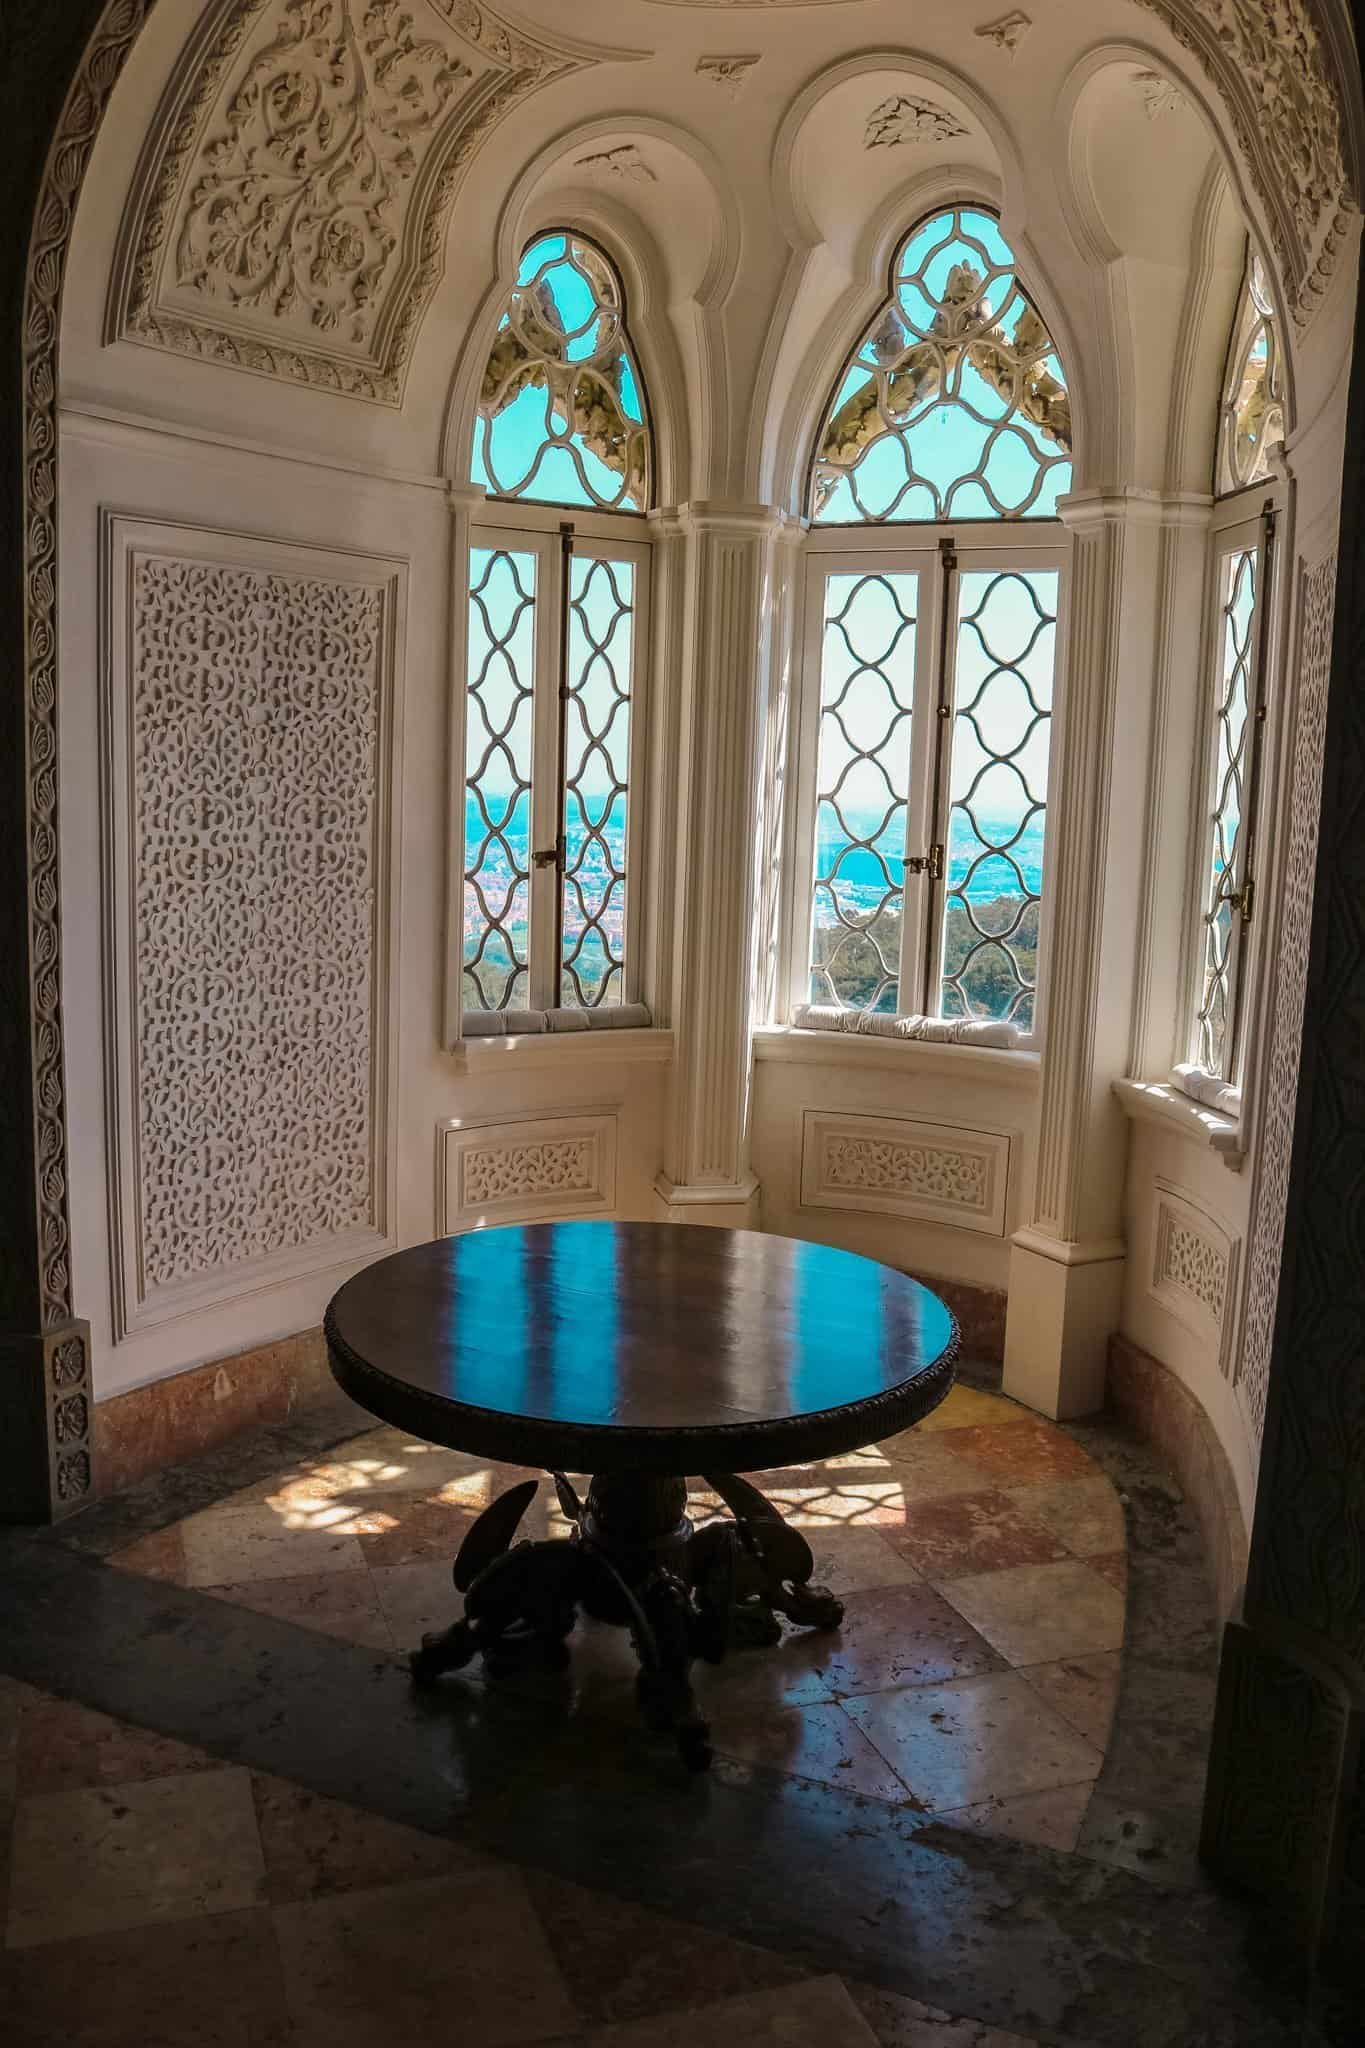 A Sintra Day Trip - Inside Pena Palace - The Next Trip